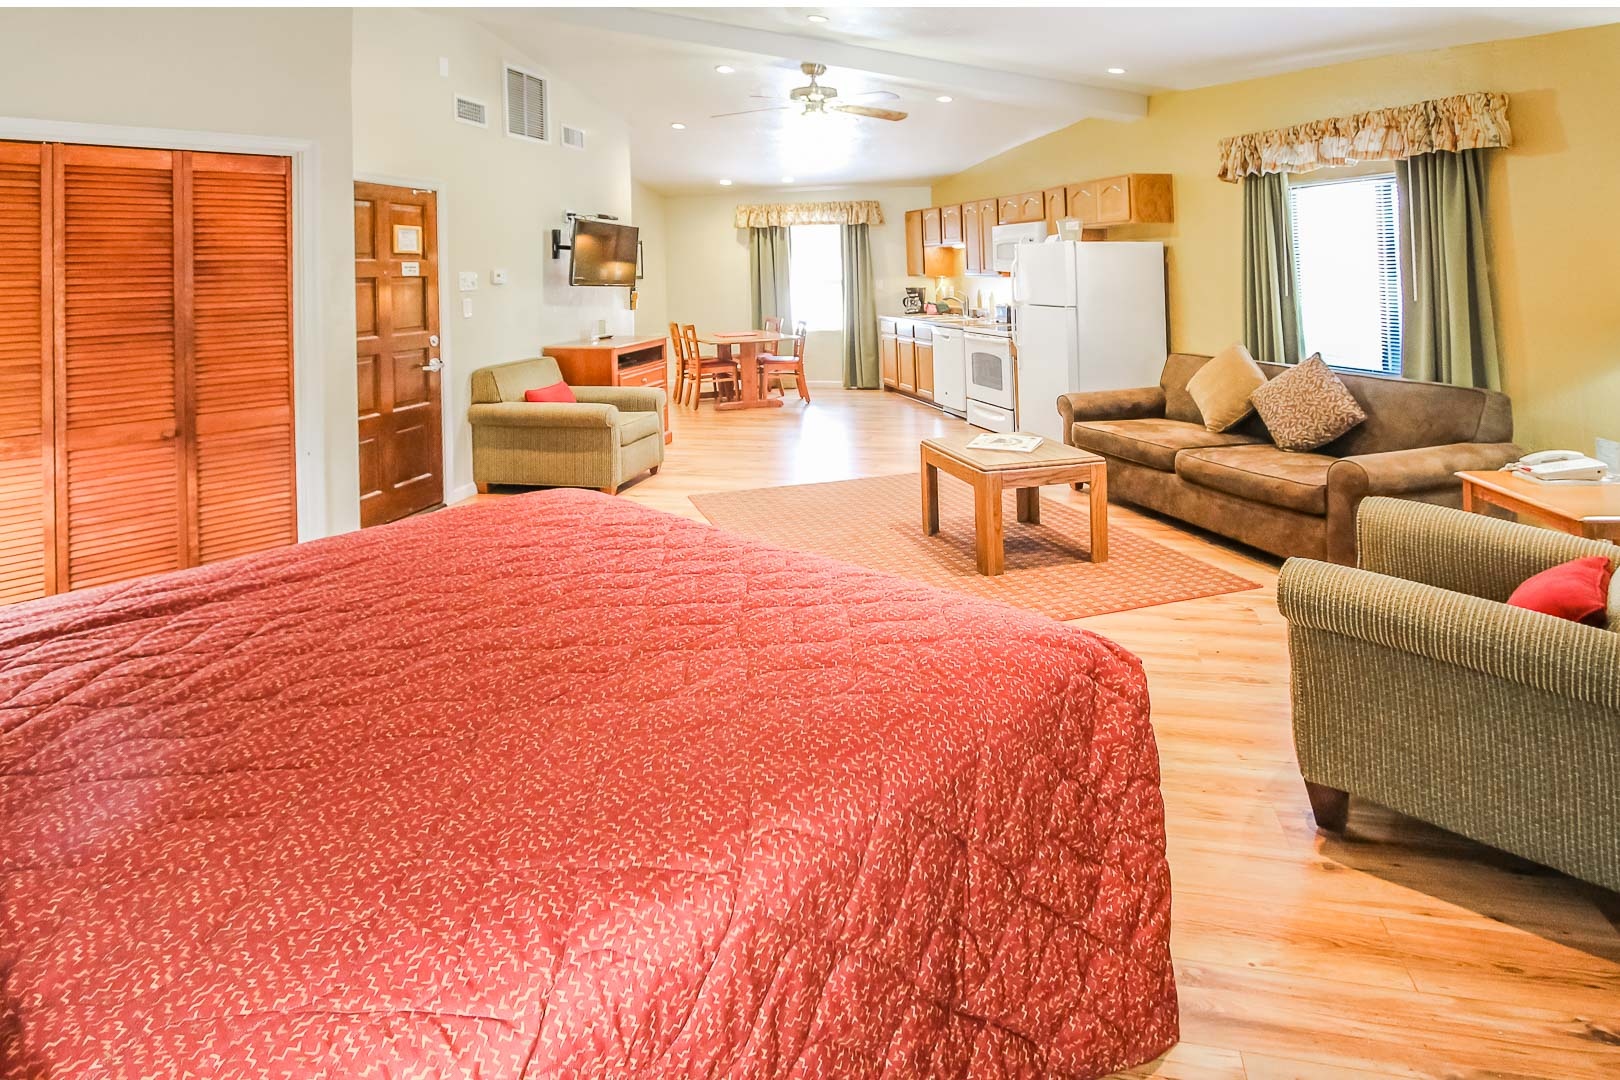 A fully equipped studio unit at VRI's Roundhouse Resort in Pinetop, Arizona.